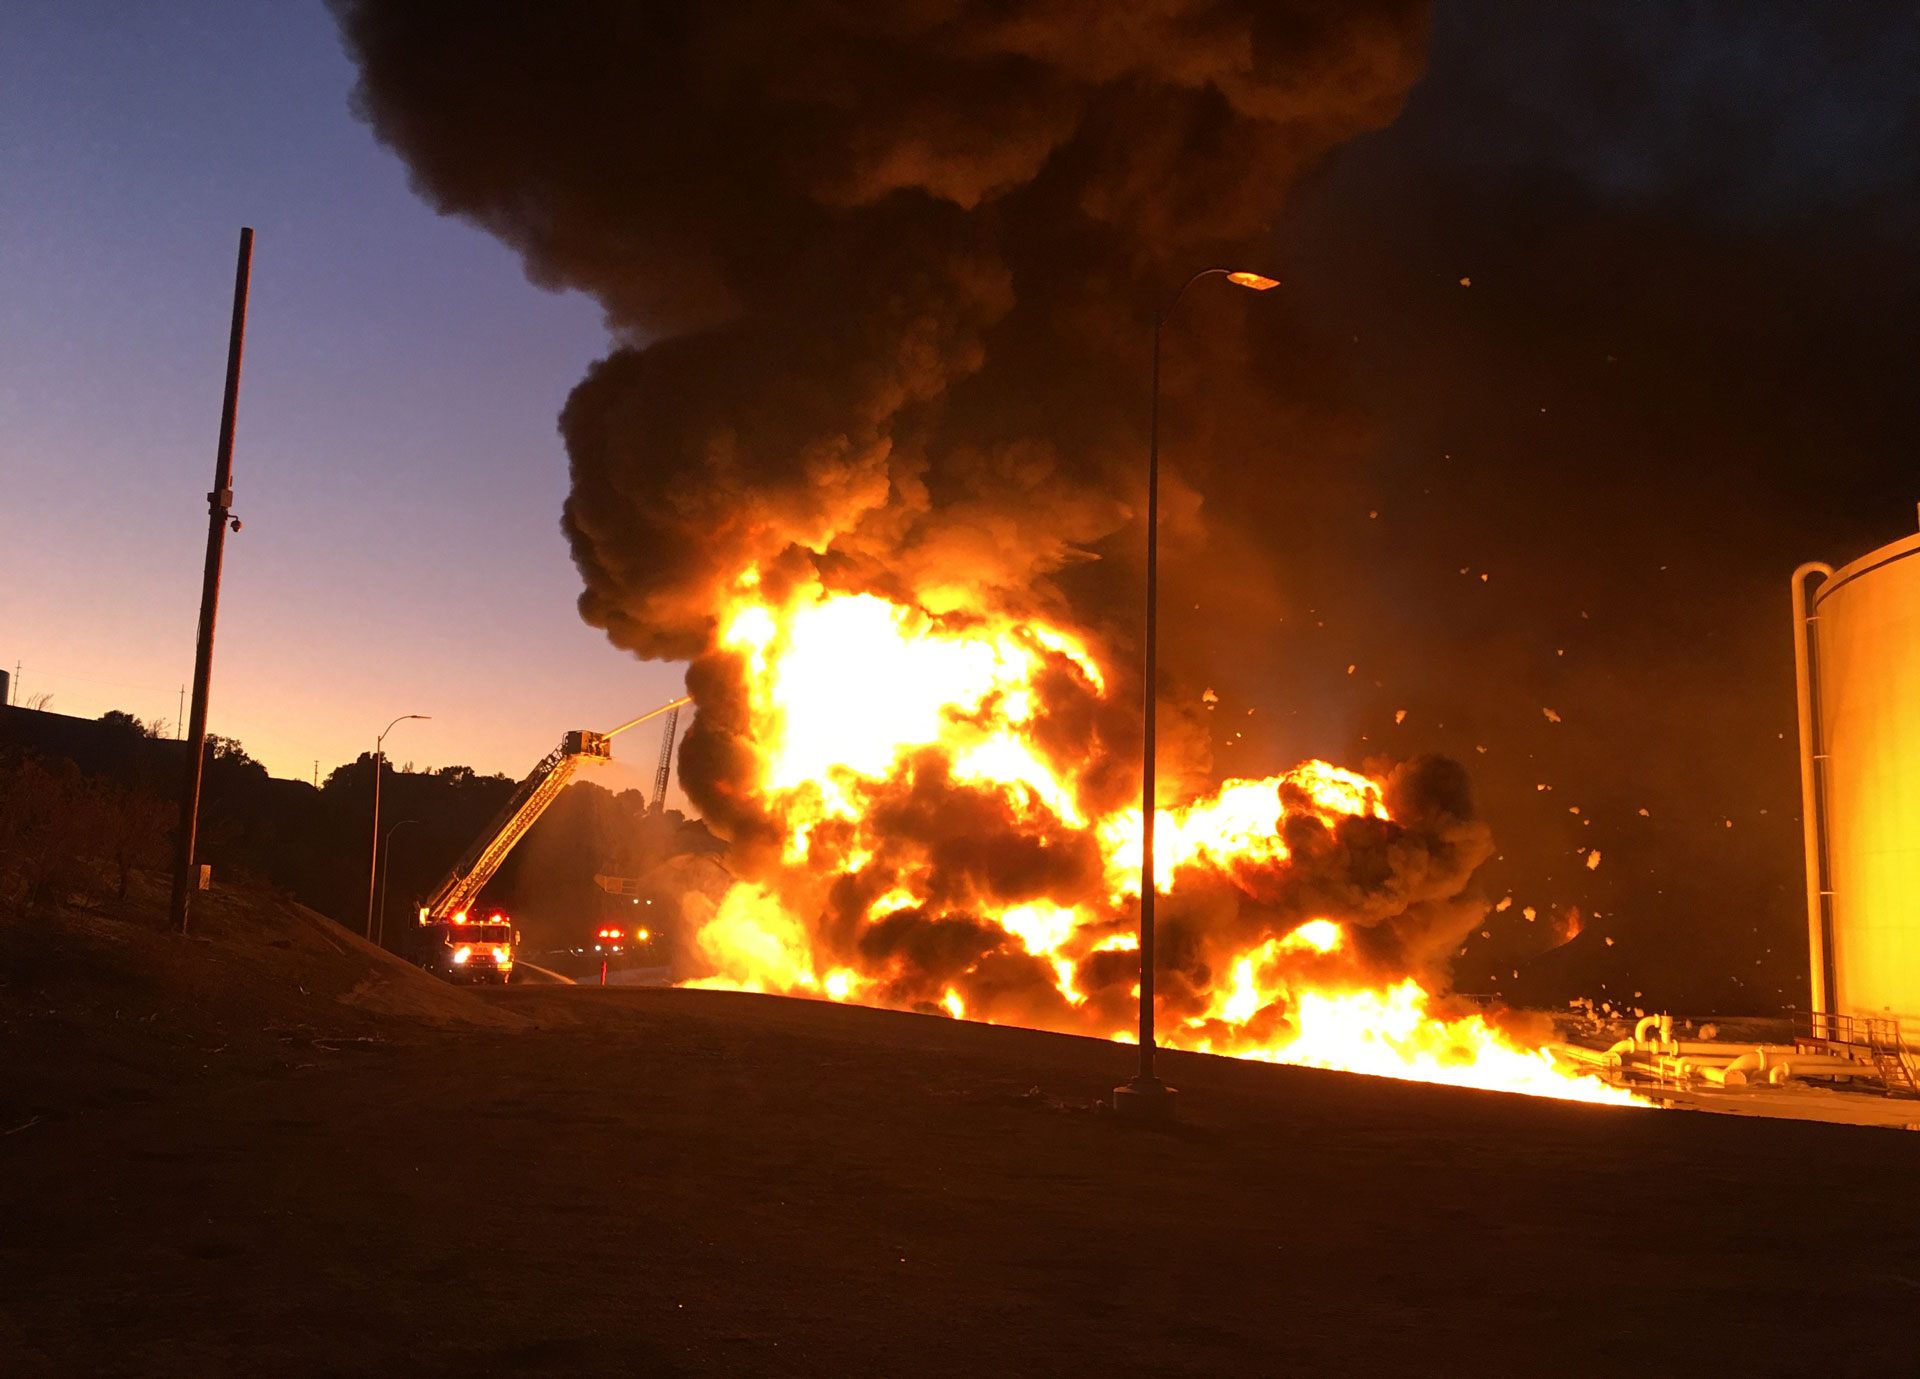 Firefighters work to protect adjacent storage tanks after a flare-up at NuStar Energy's facility in Crockett on Tuesday evening.